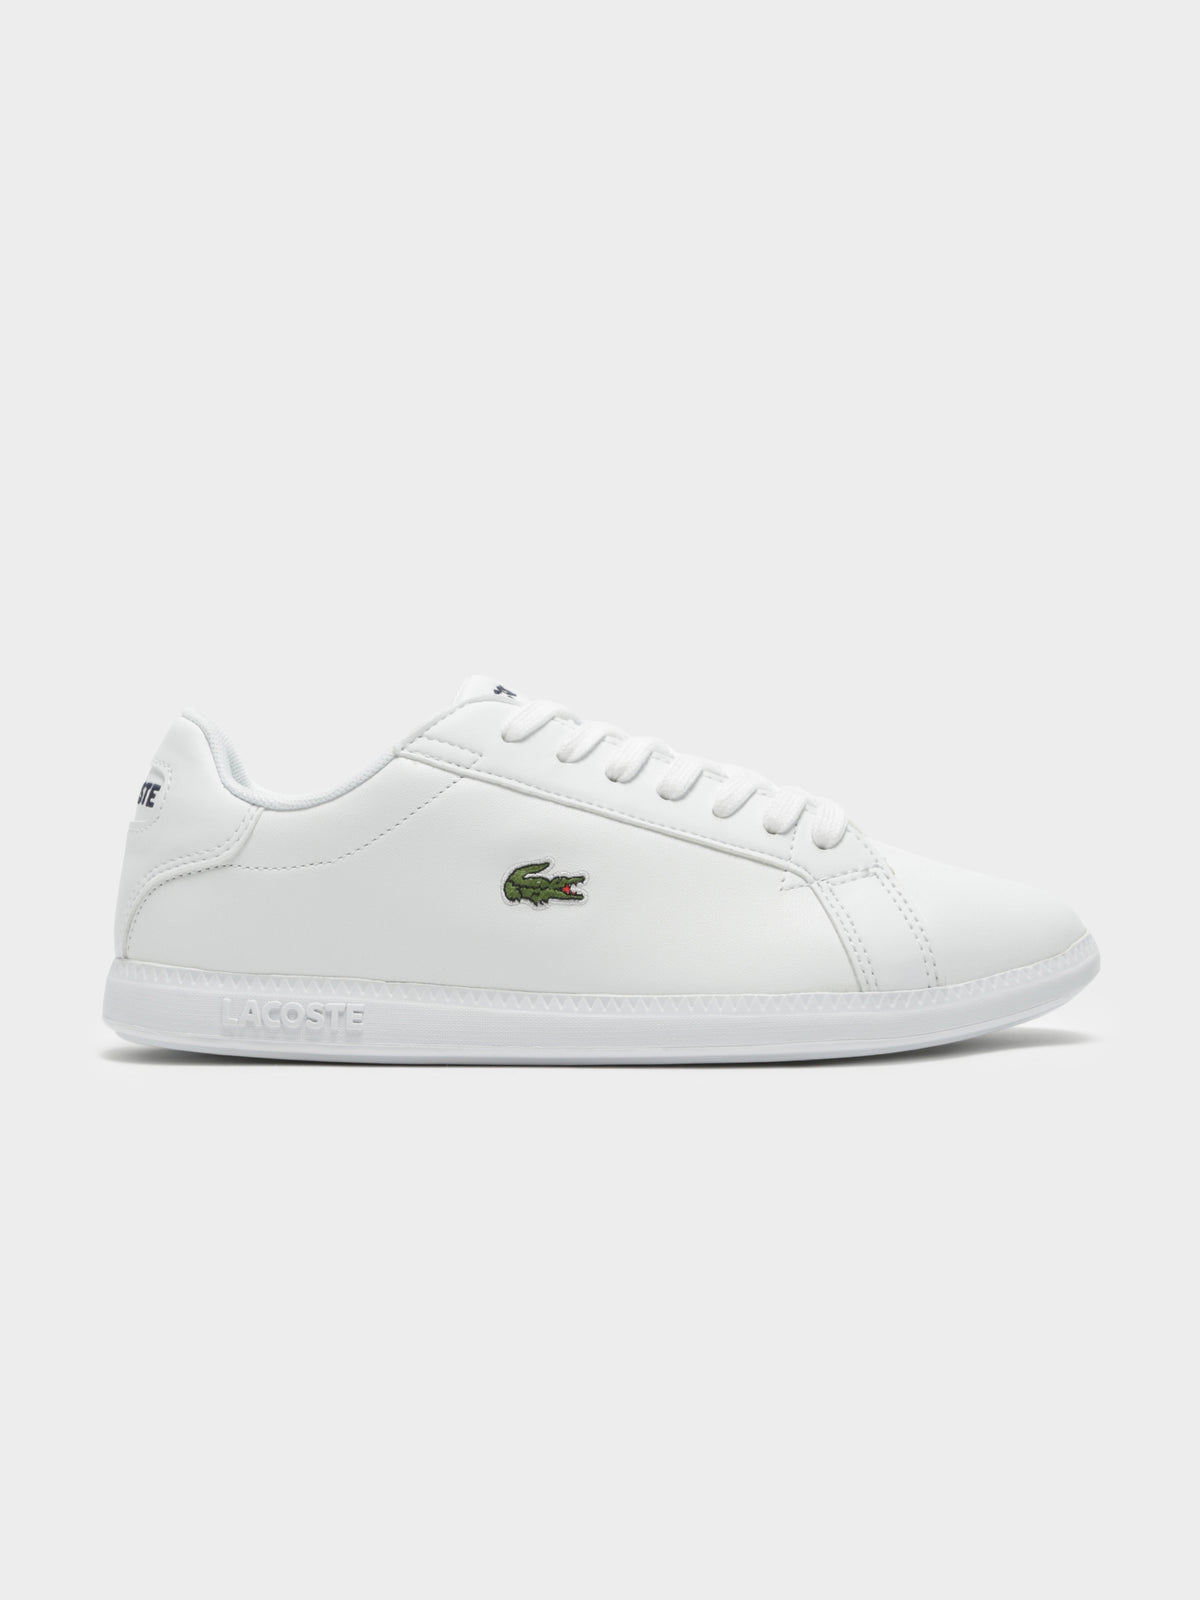 Womens Graduate BL 1 Sneakers in White